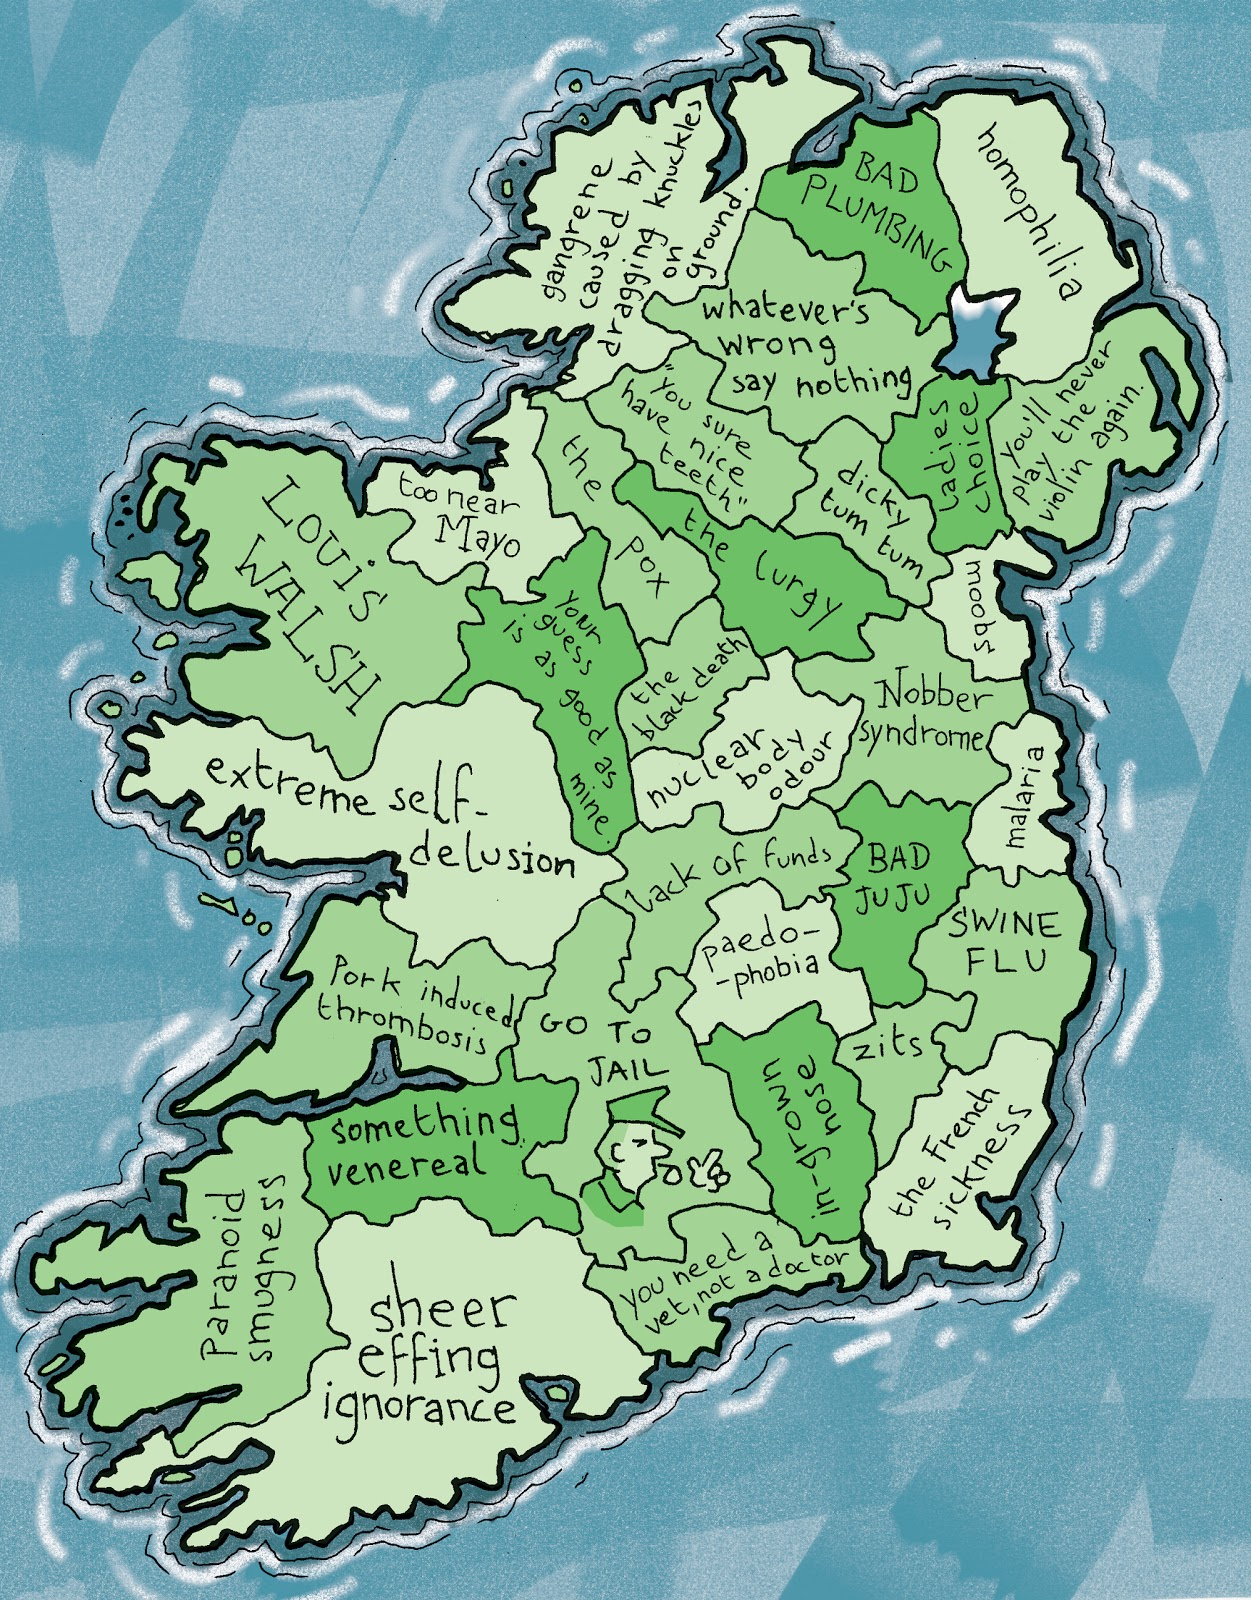 my cartoon version of reality diagnostic map of ireland